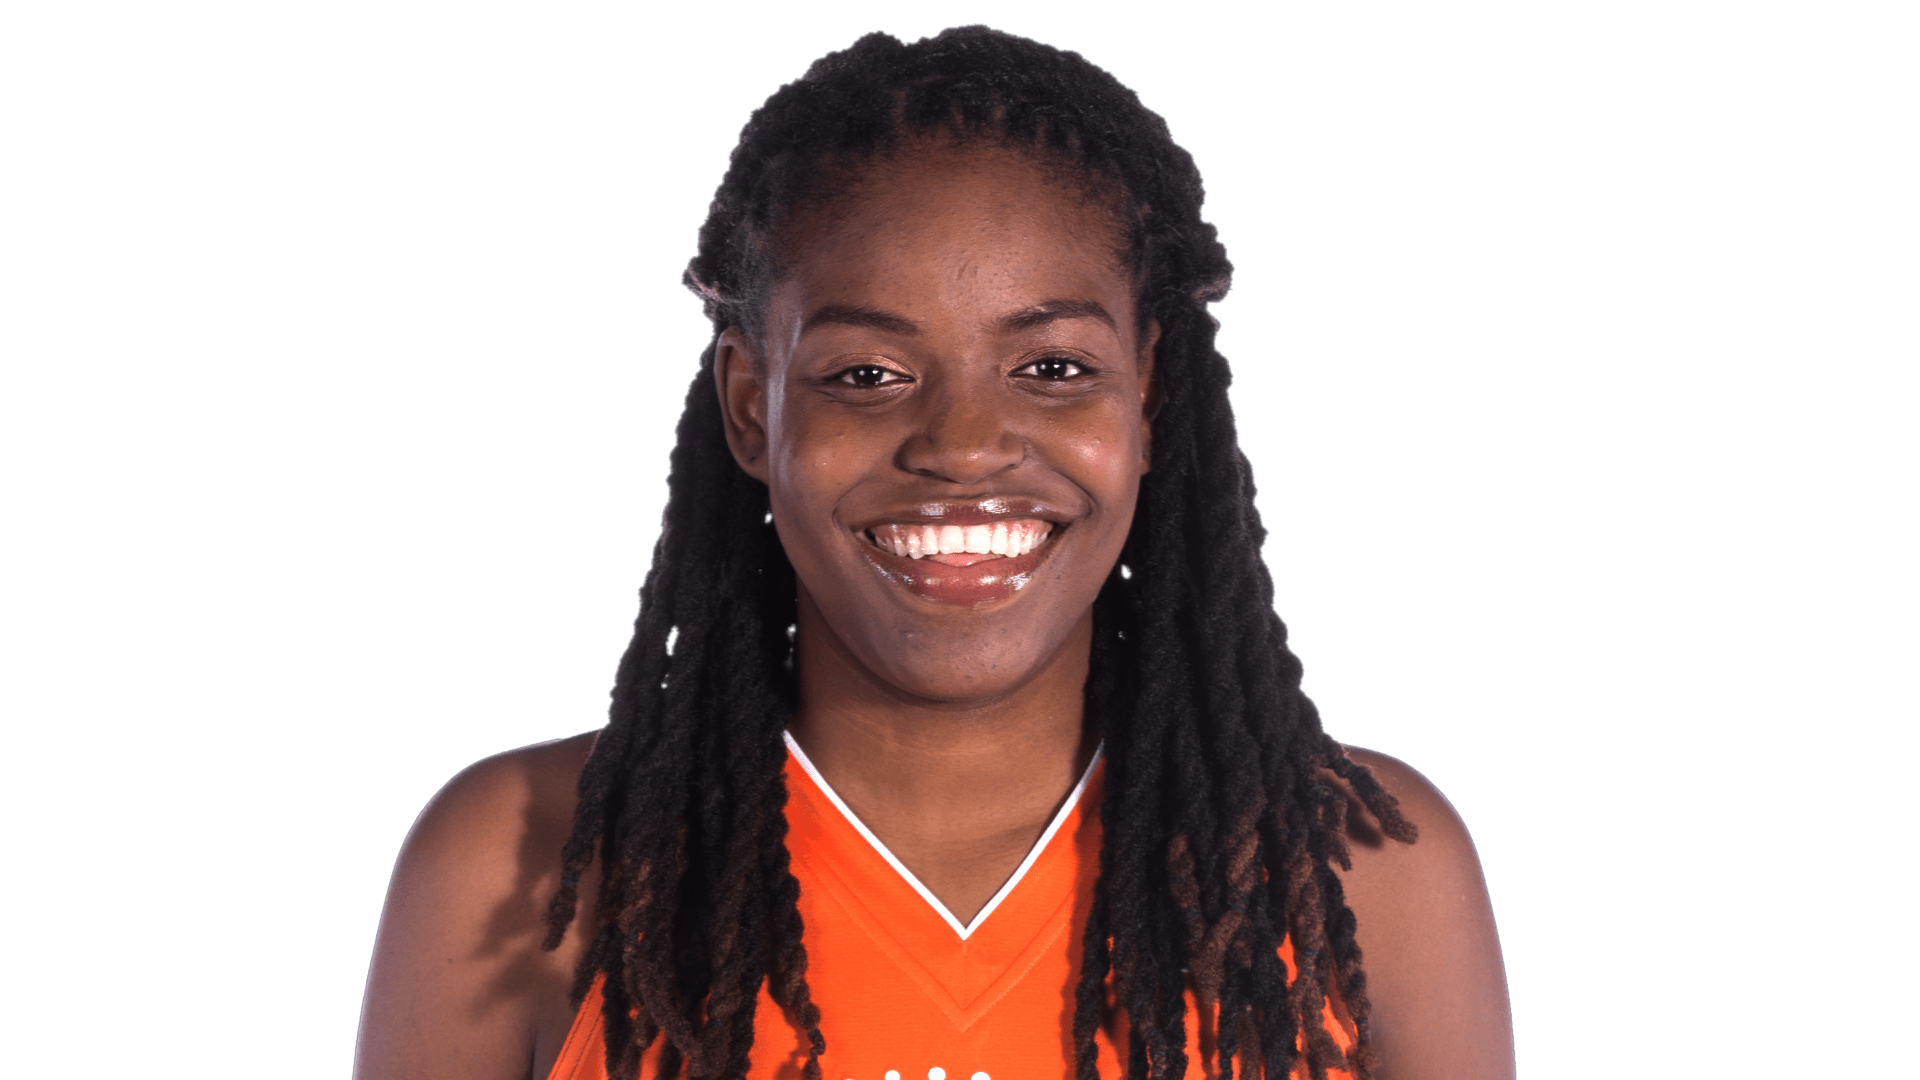 WNBA Players of the Week for games played June 12-18: Jonquel Jones (Connecticut Sun) and Candace Parker (Los Angeles Sparks)